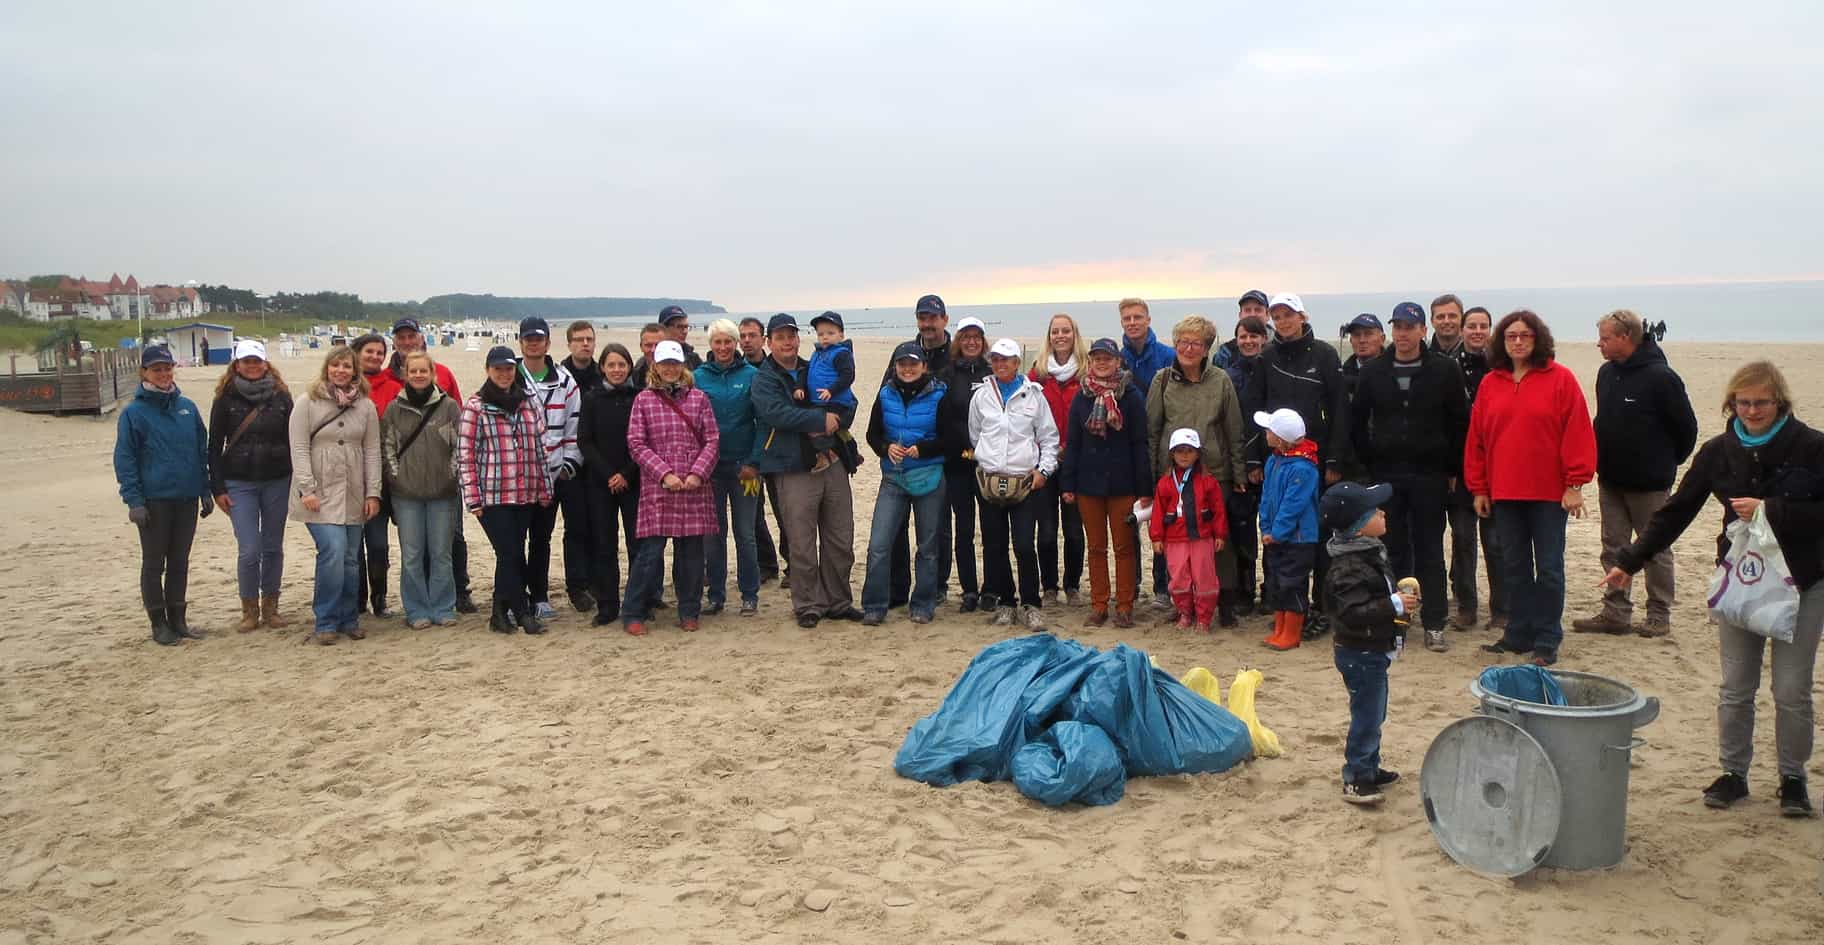 2013: Many people supported Monika Griefahn and the AIDA Cruises employees at the coastal cleanup day in Rostock-Warnemünde.